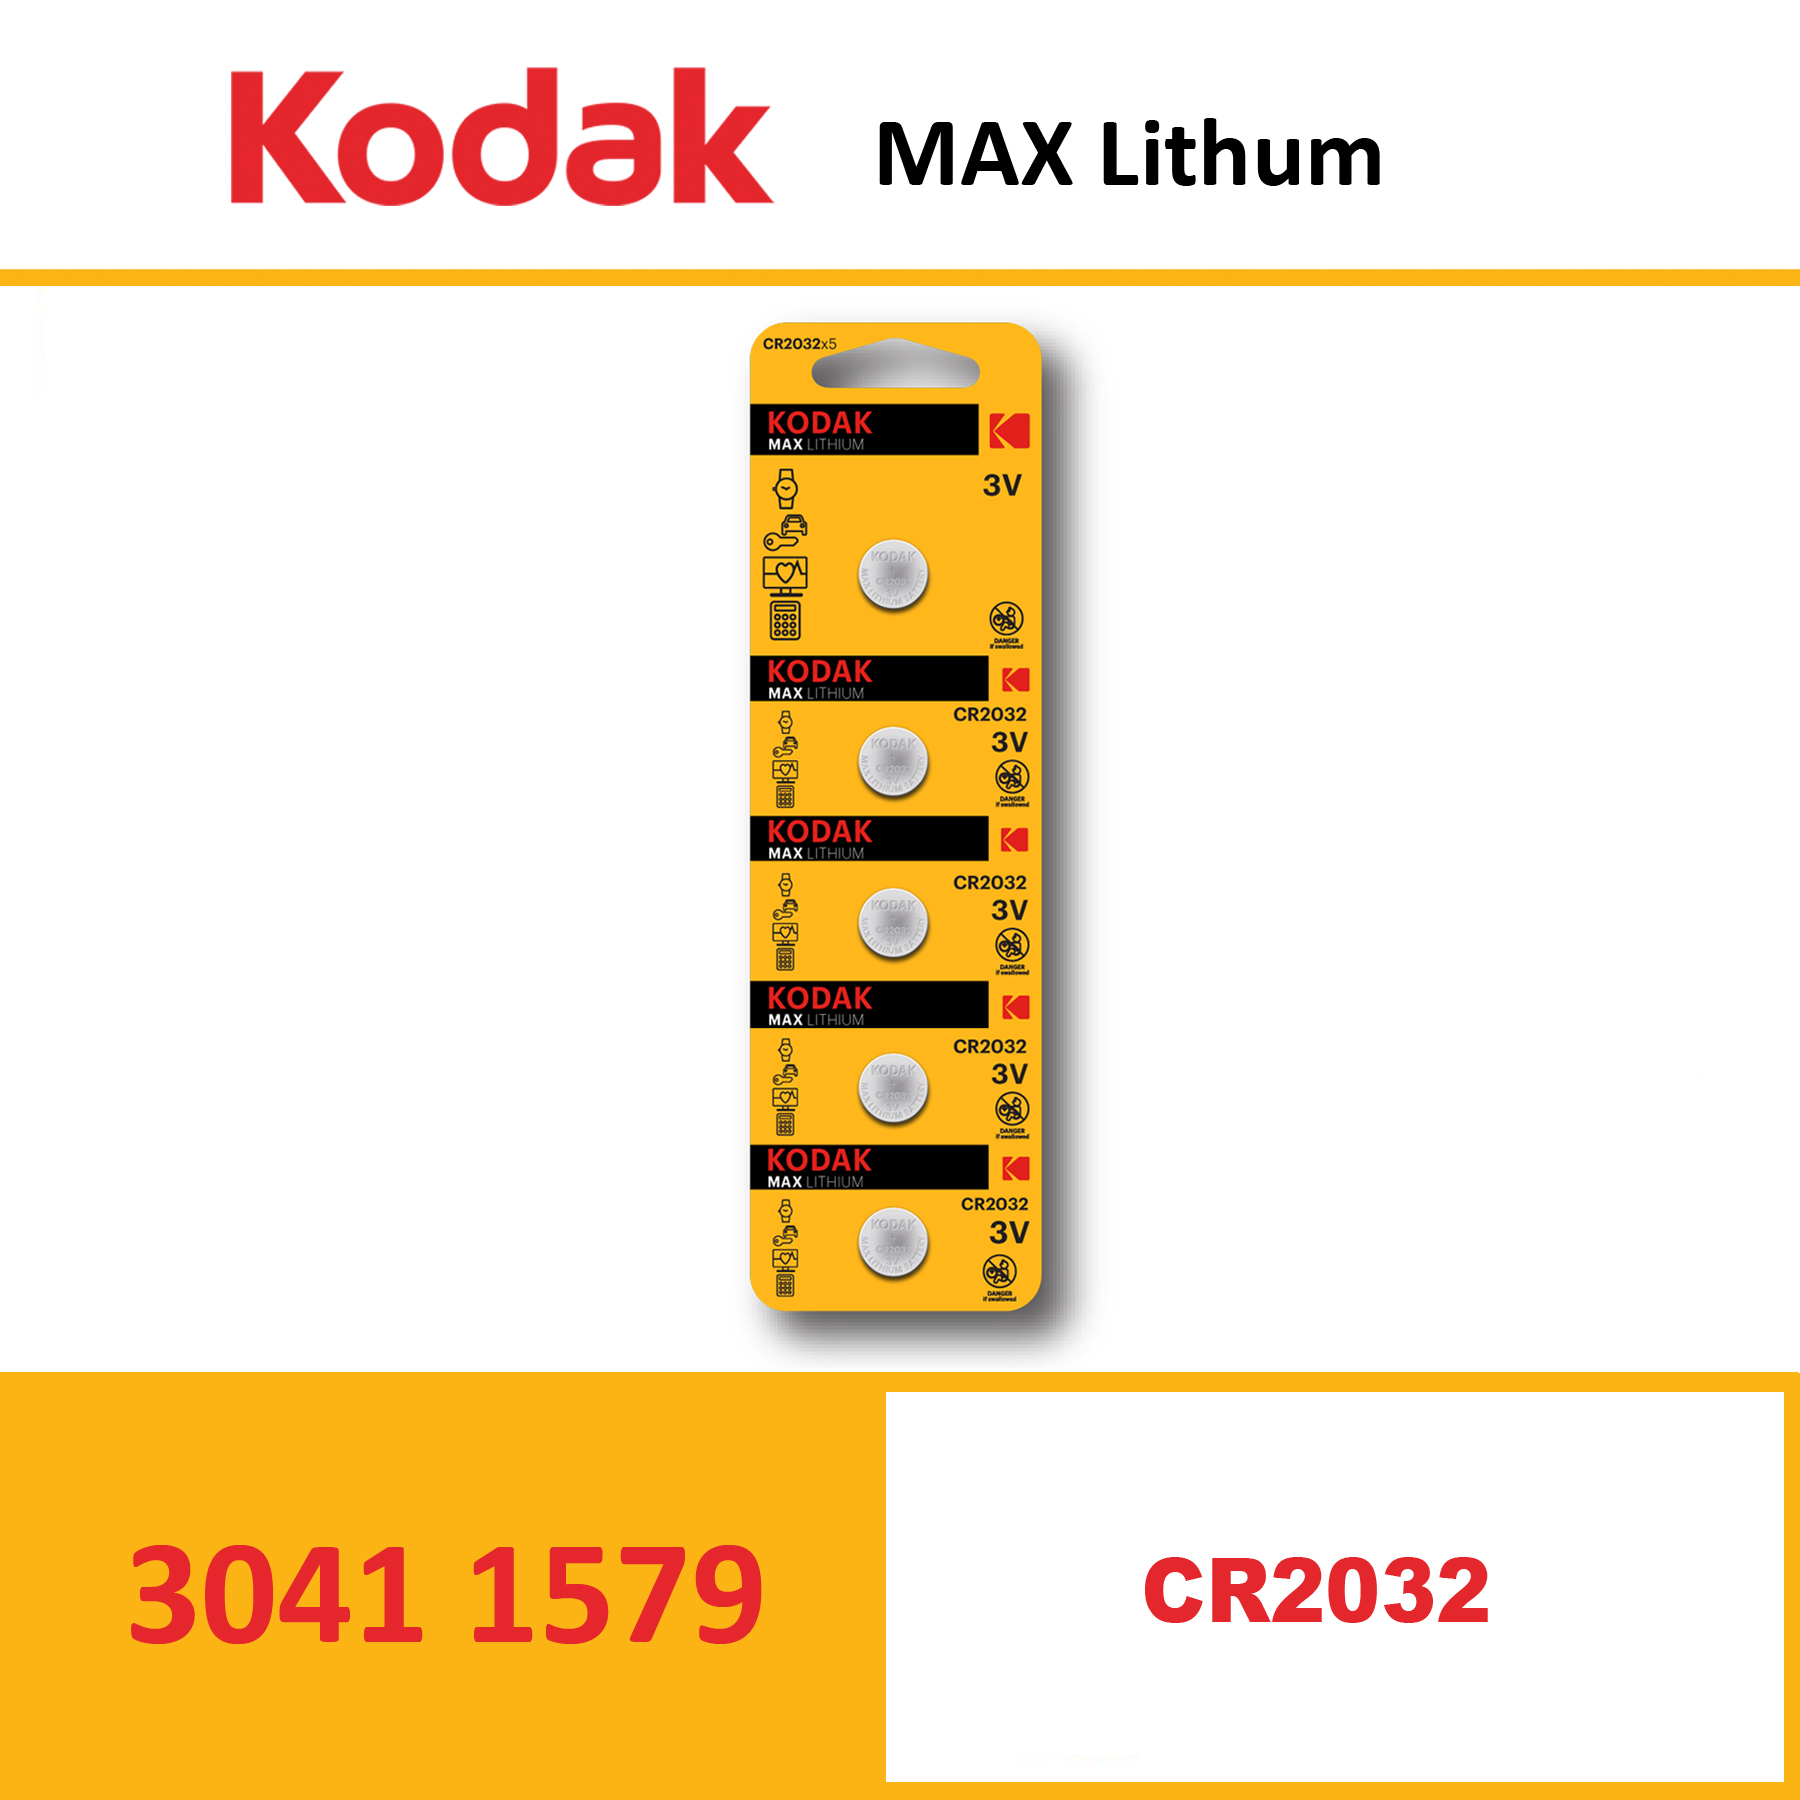 KODAK KCR2032 MAX Lithium coin cell Pack of 5 Piece